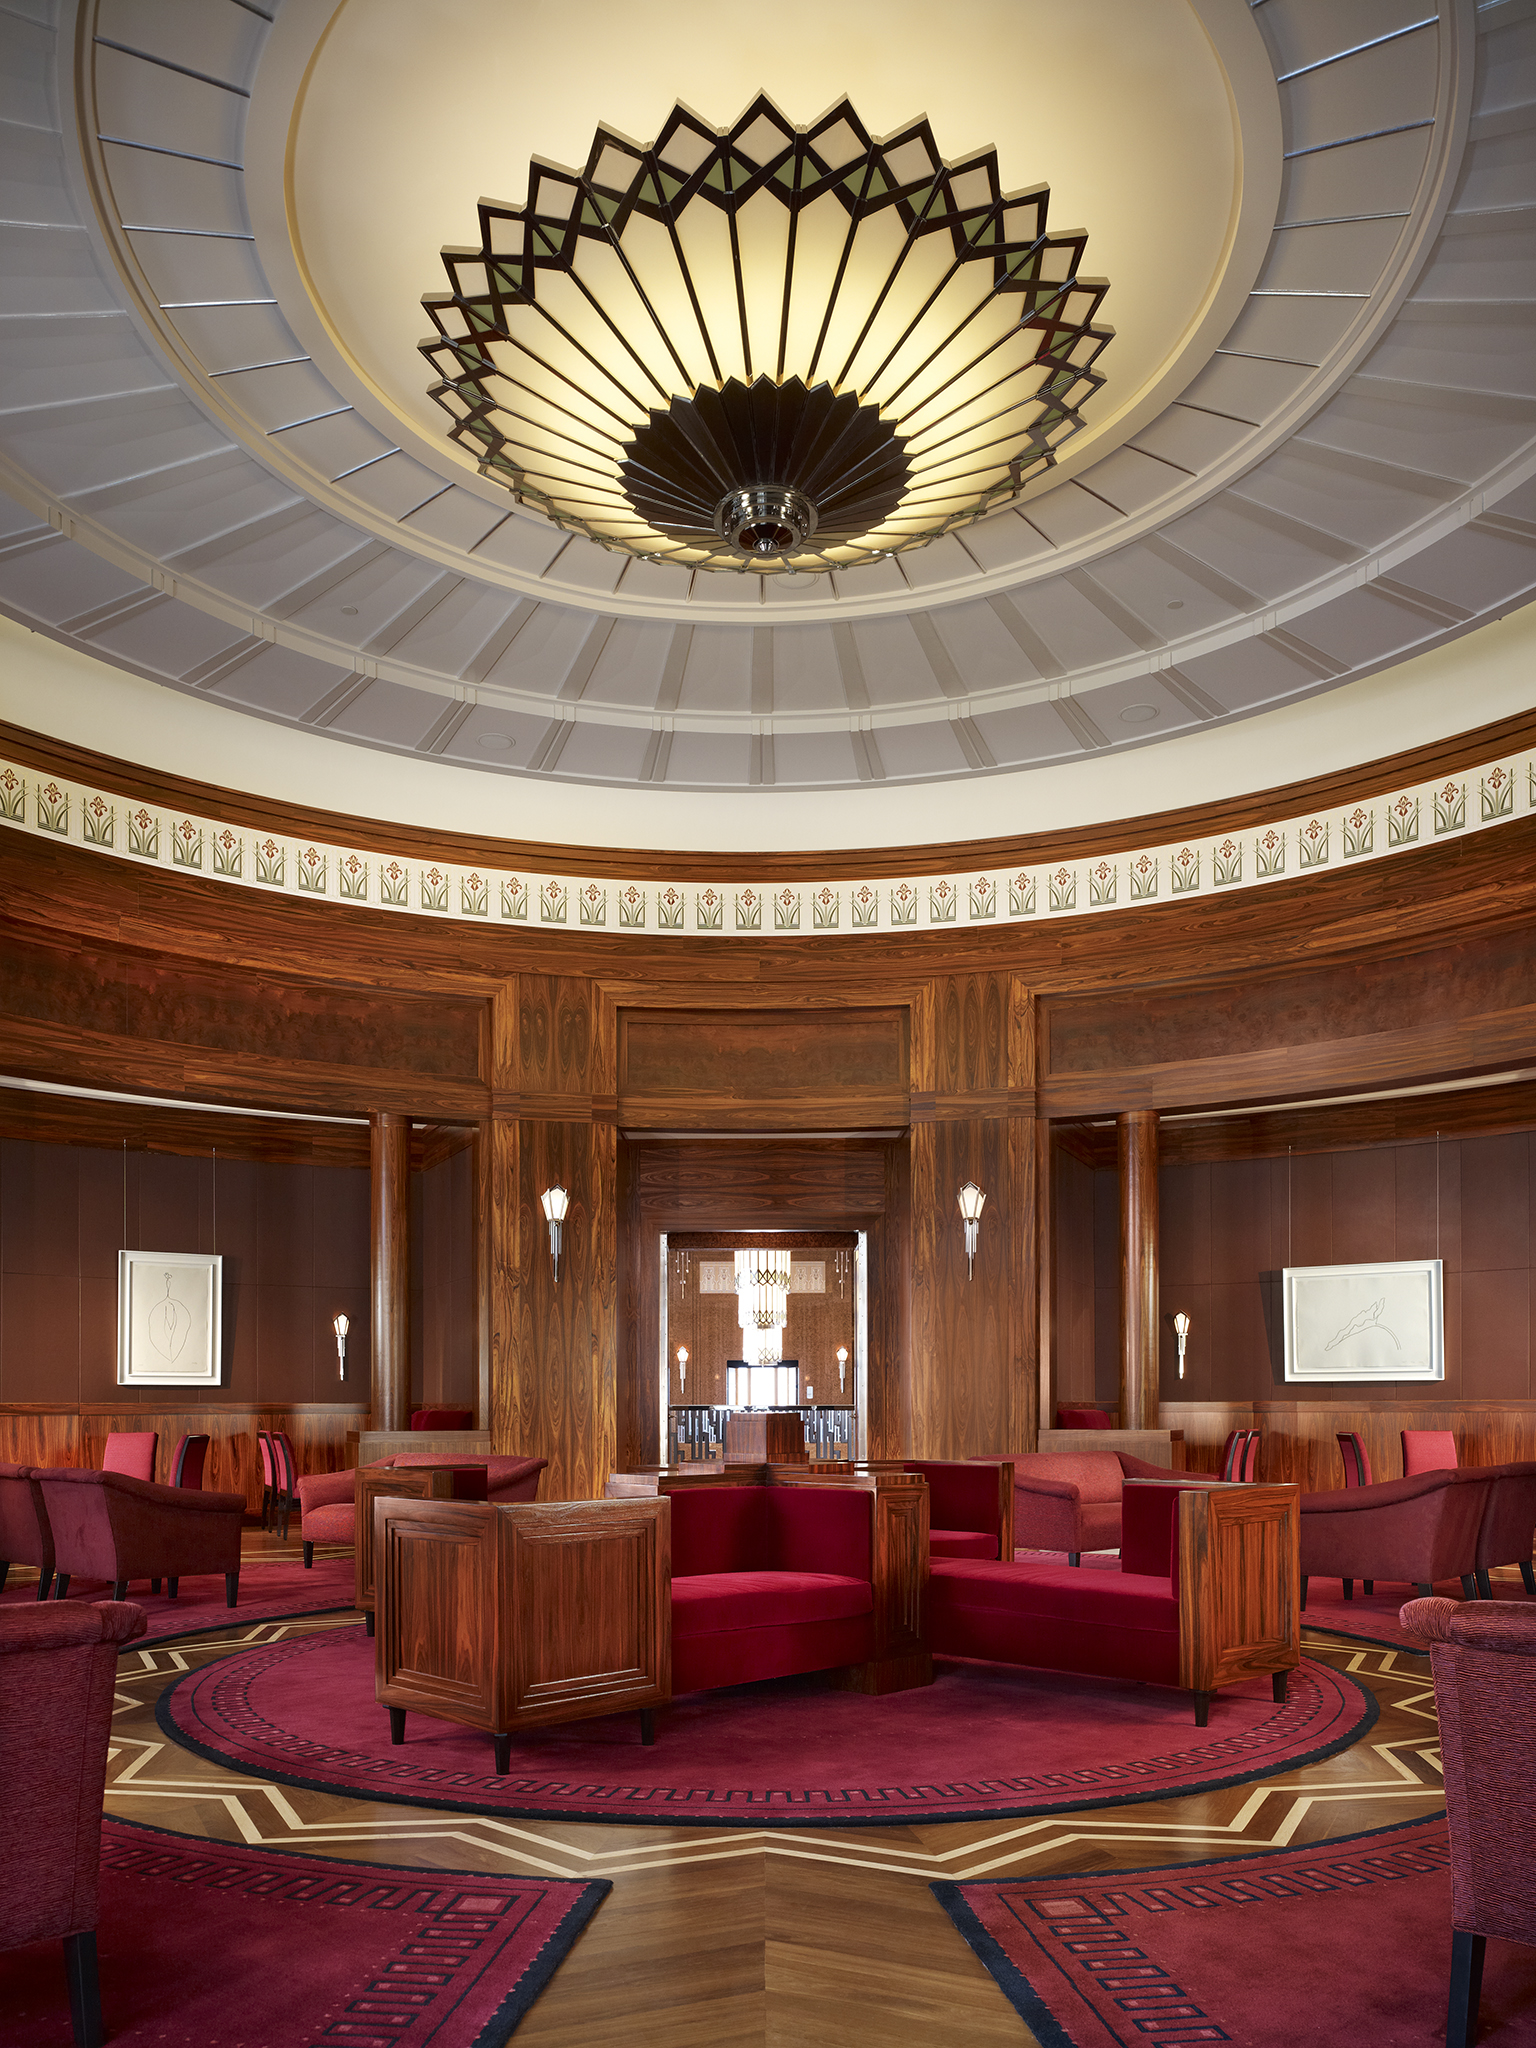 The founders room at the smith center for the performing arts epitomizes the way in which